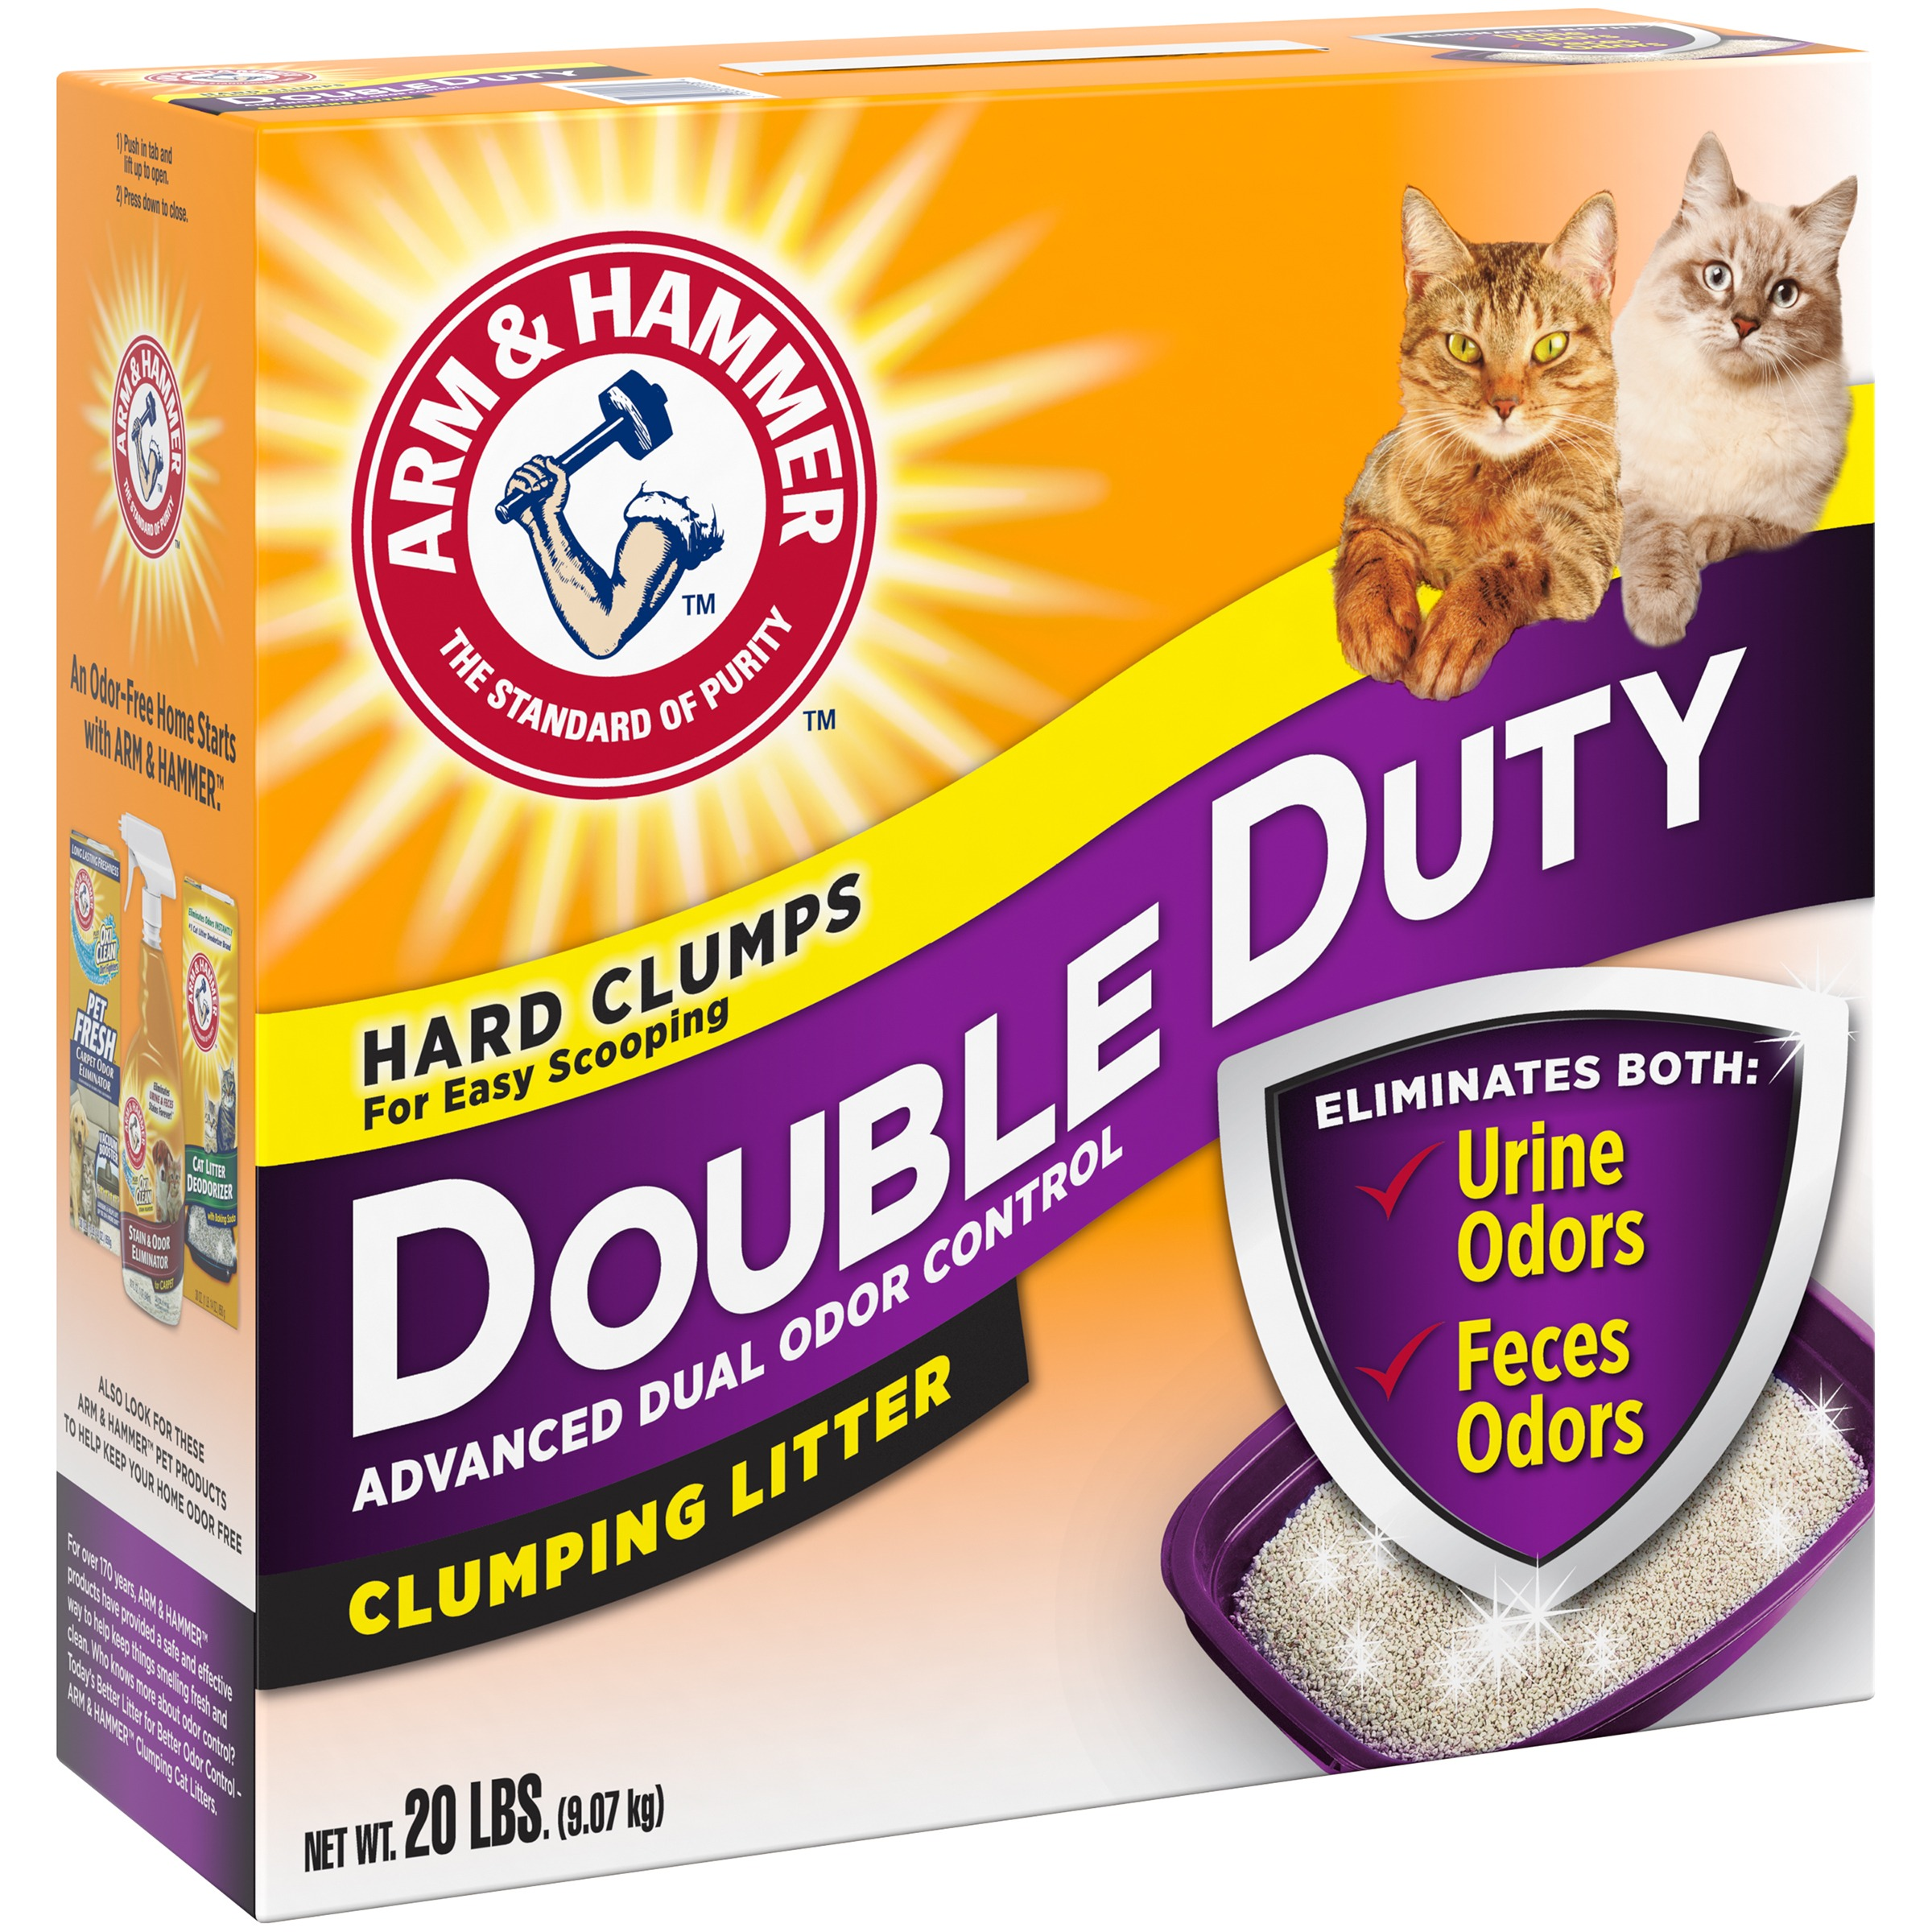 Arm & Hammer™ Double Duty Advanced Dual Odor Control Clumping Cat Litter 20 lb. Box